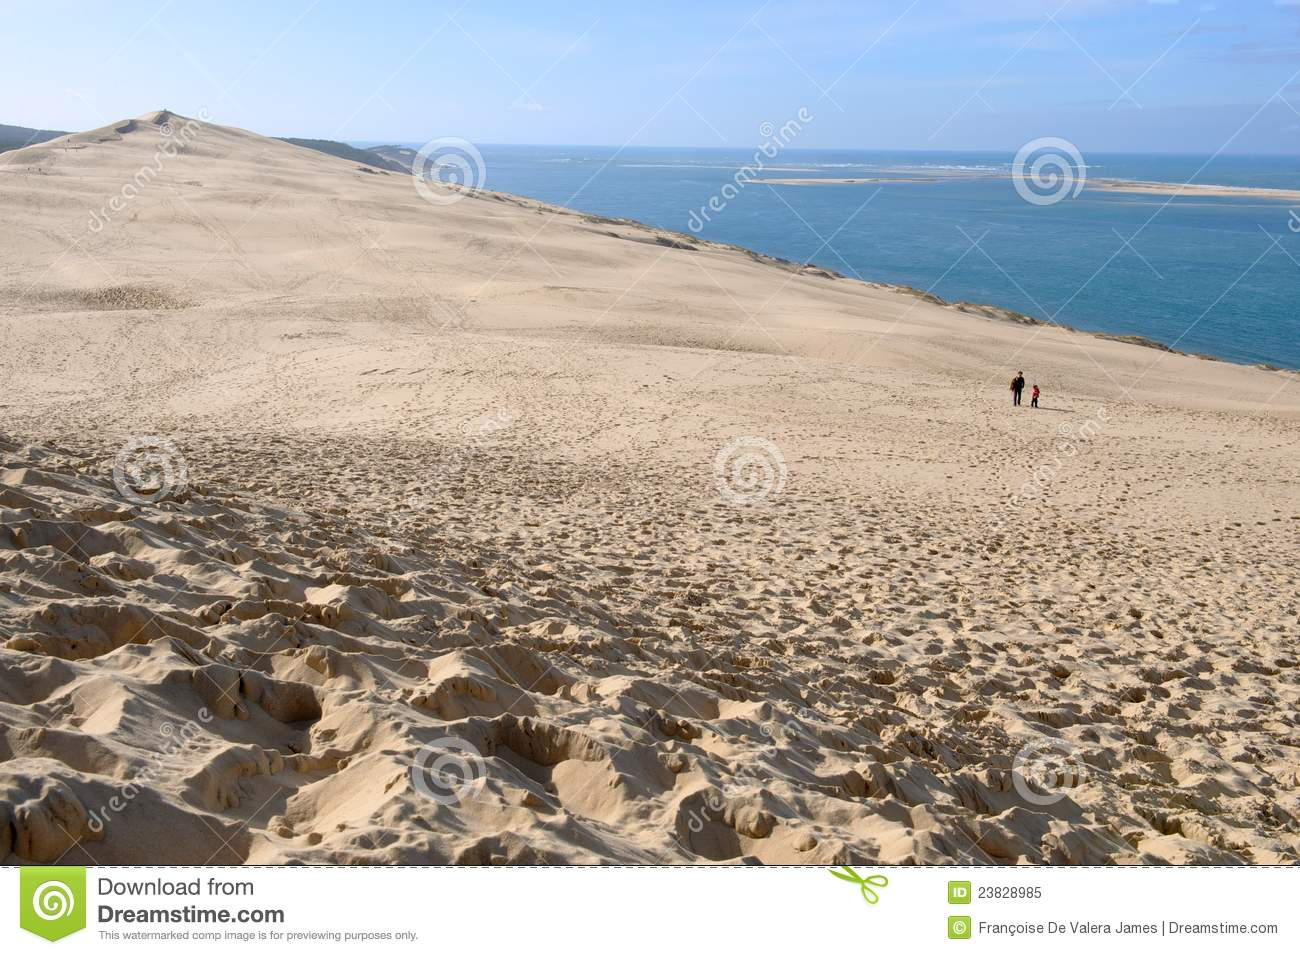 dune du pyla arcachon france stock image image 23828985. Black Bedroom Furniture Sets. Home Design Ideas